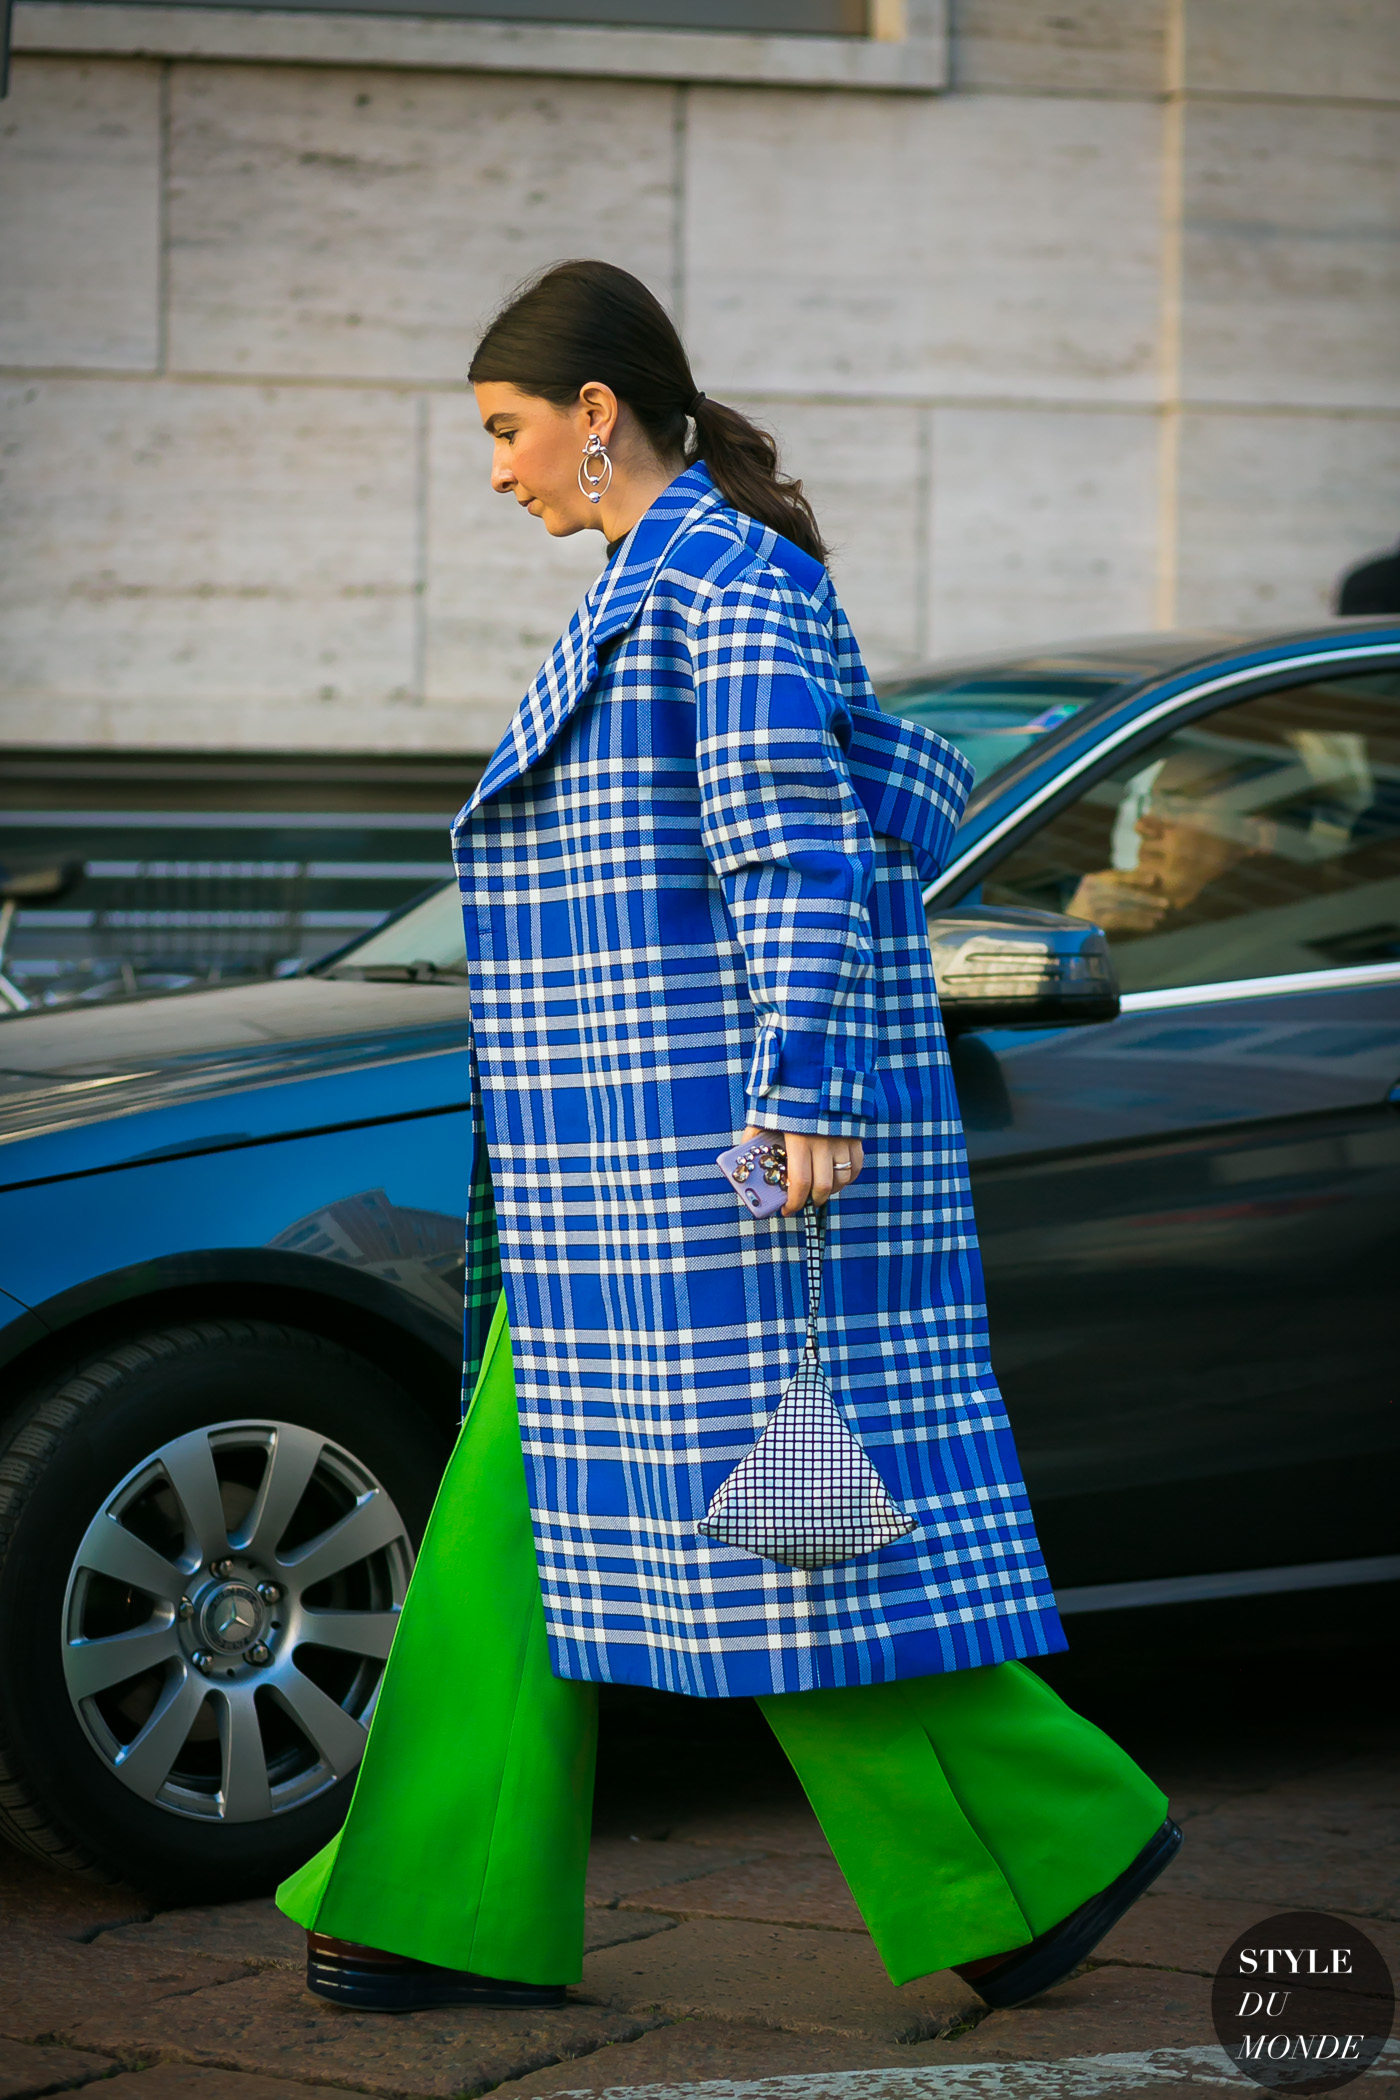 Jacquemus Plaid Coat by STYLEDUMONDE Street Style Fashion Photography